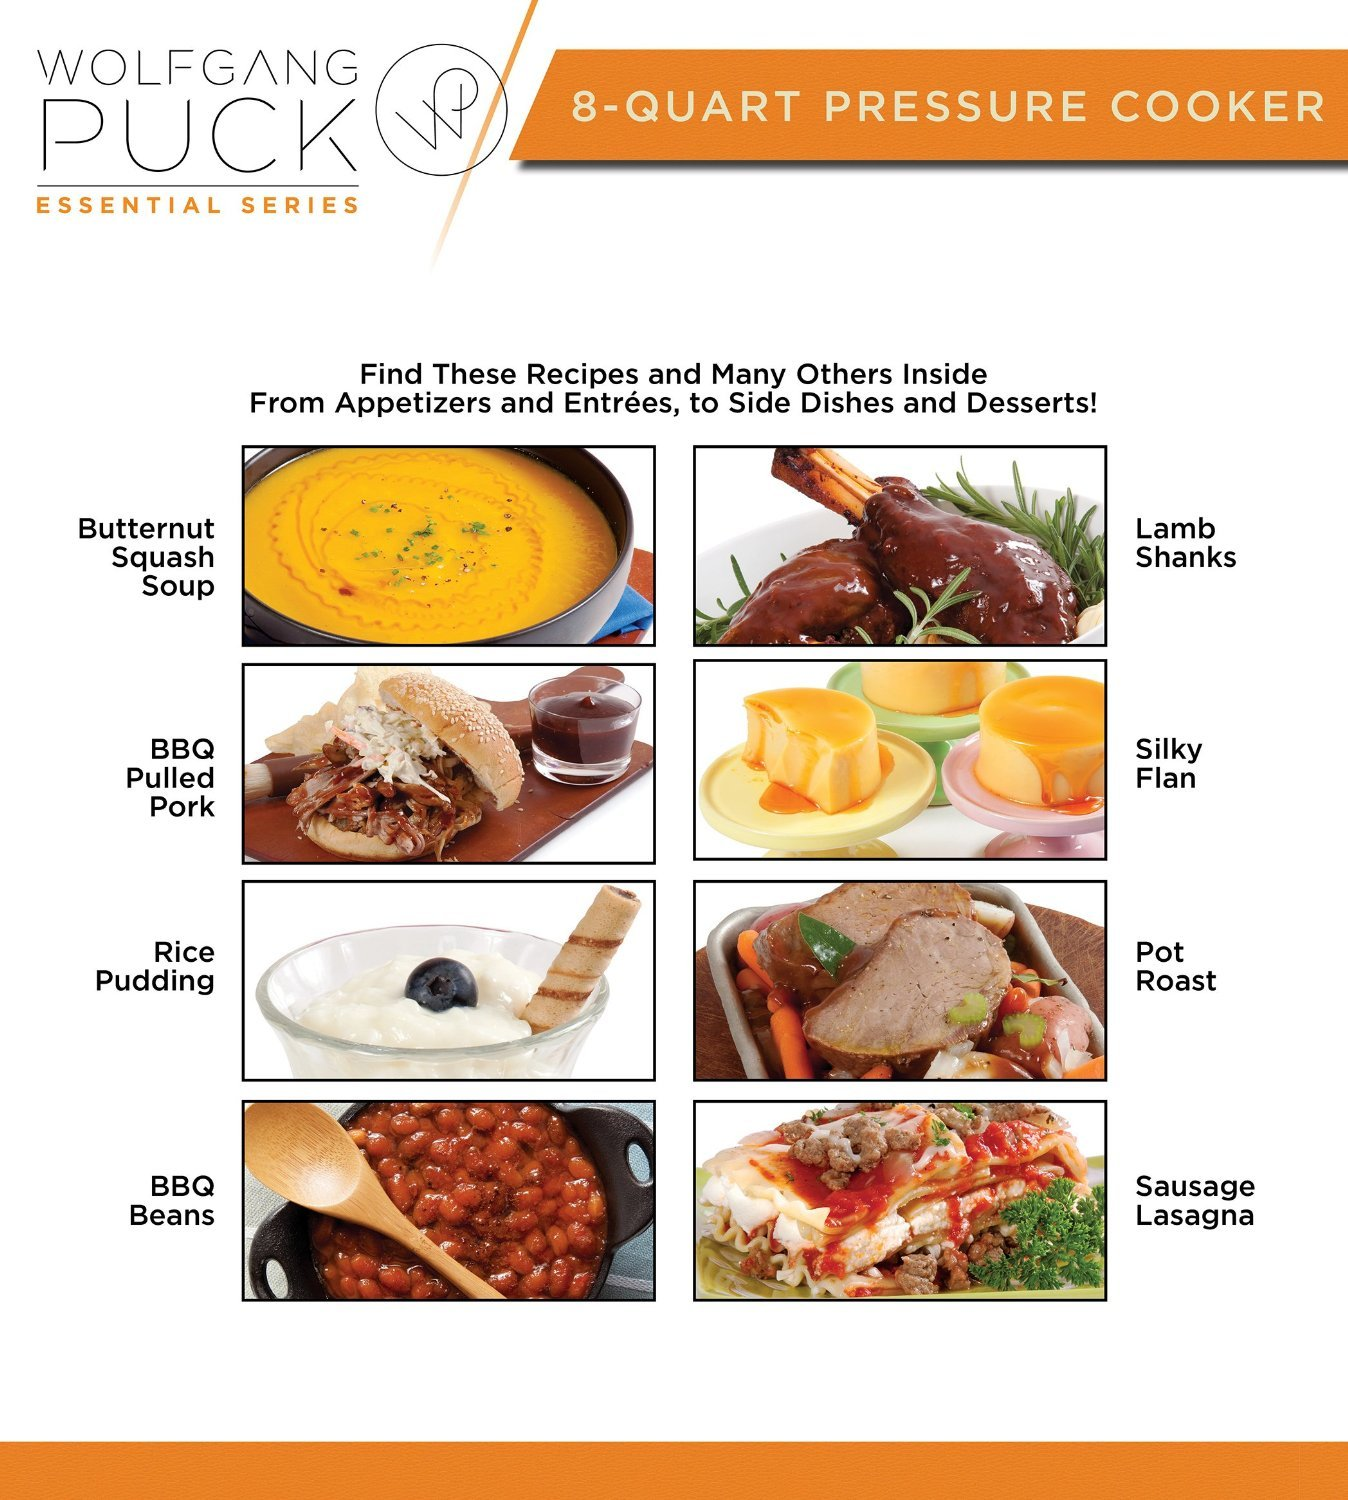 Wolfgang Puck Automatic Pressure Cooker with Removable 8 Quart Pot, 1200-Watt Cook and Sear by Wolfgang Puck (Image #7)